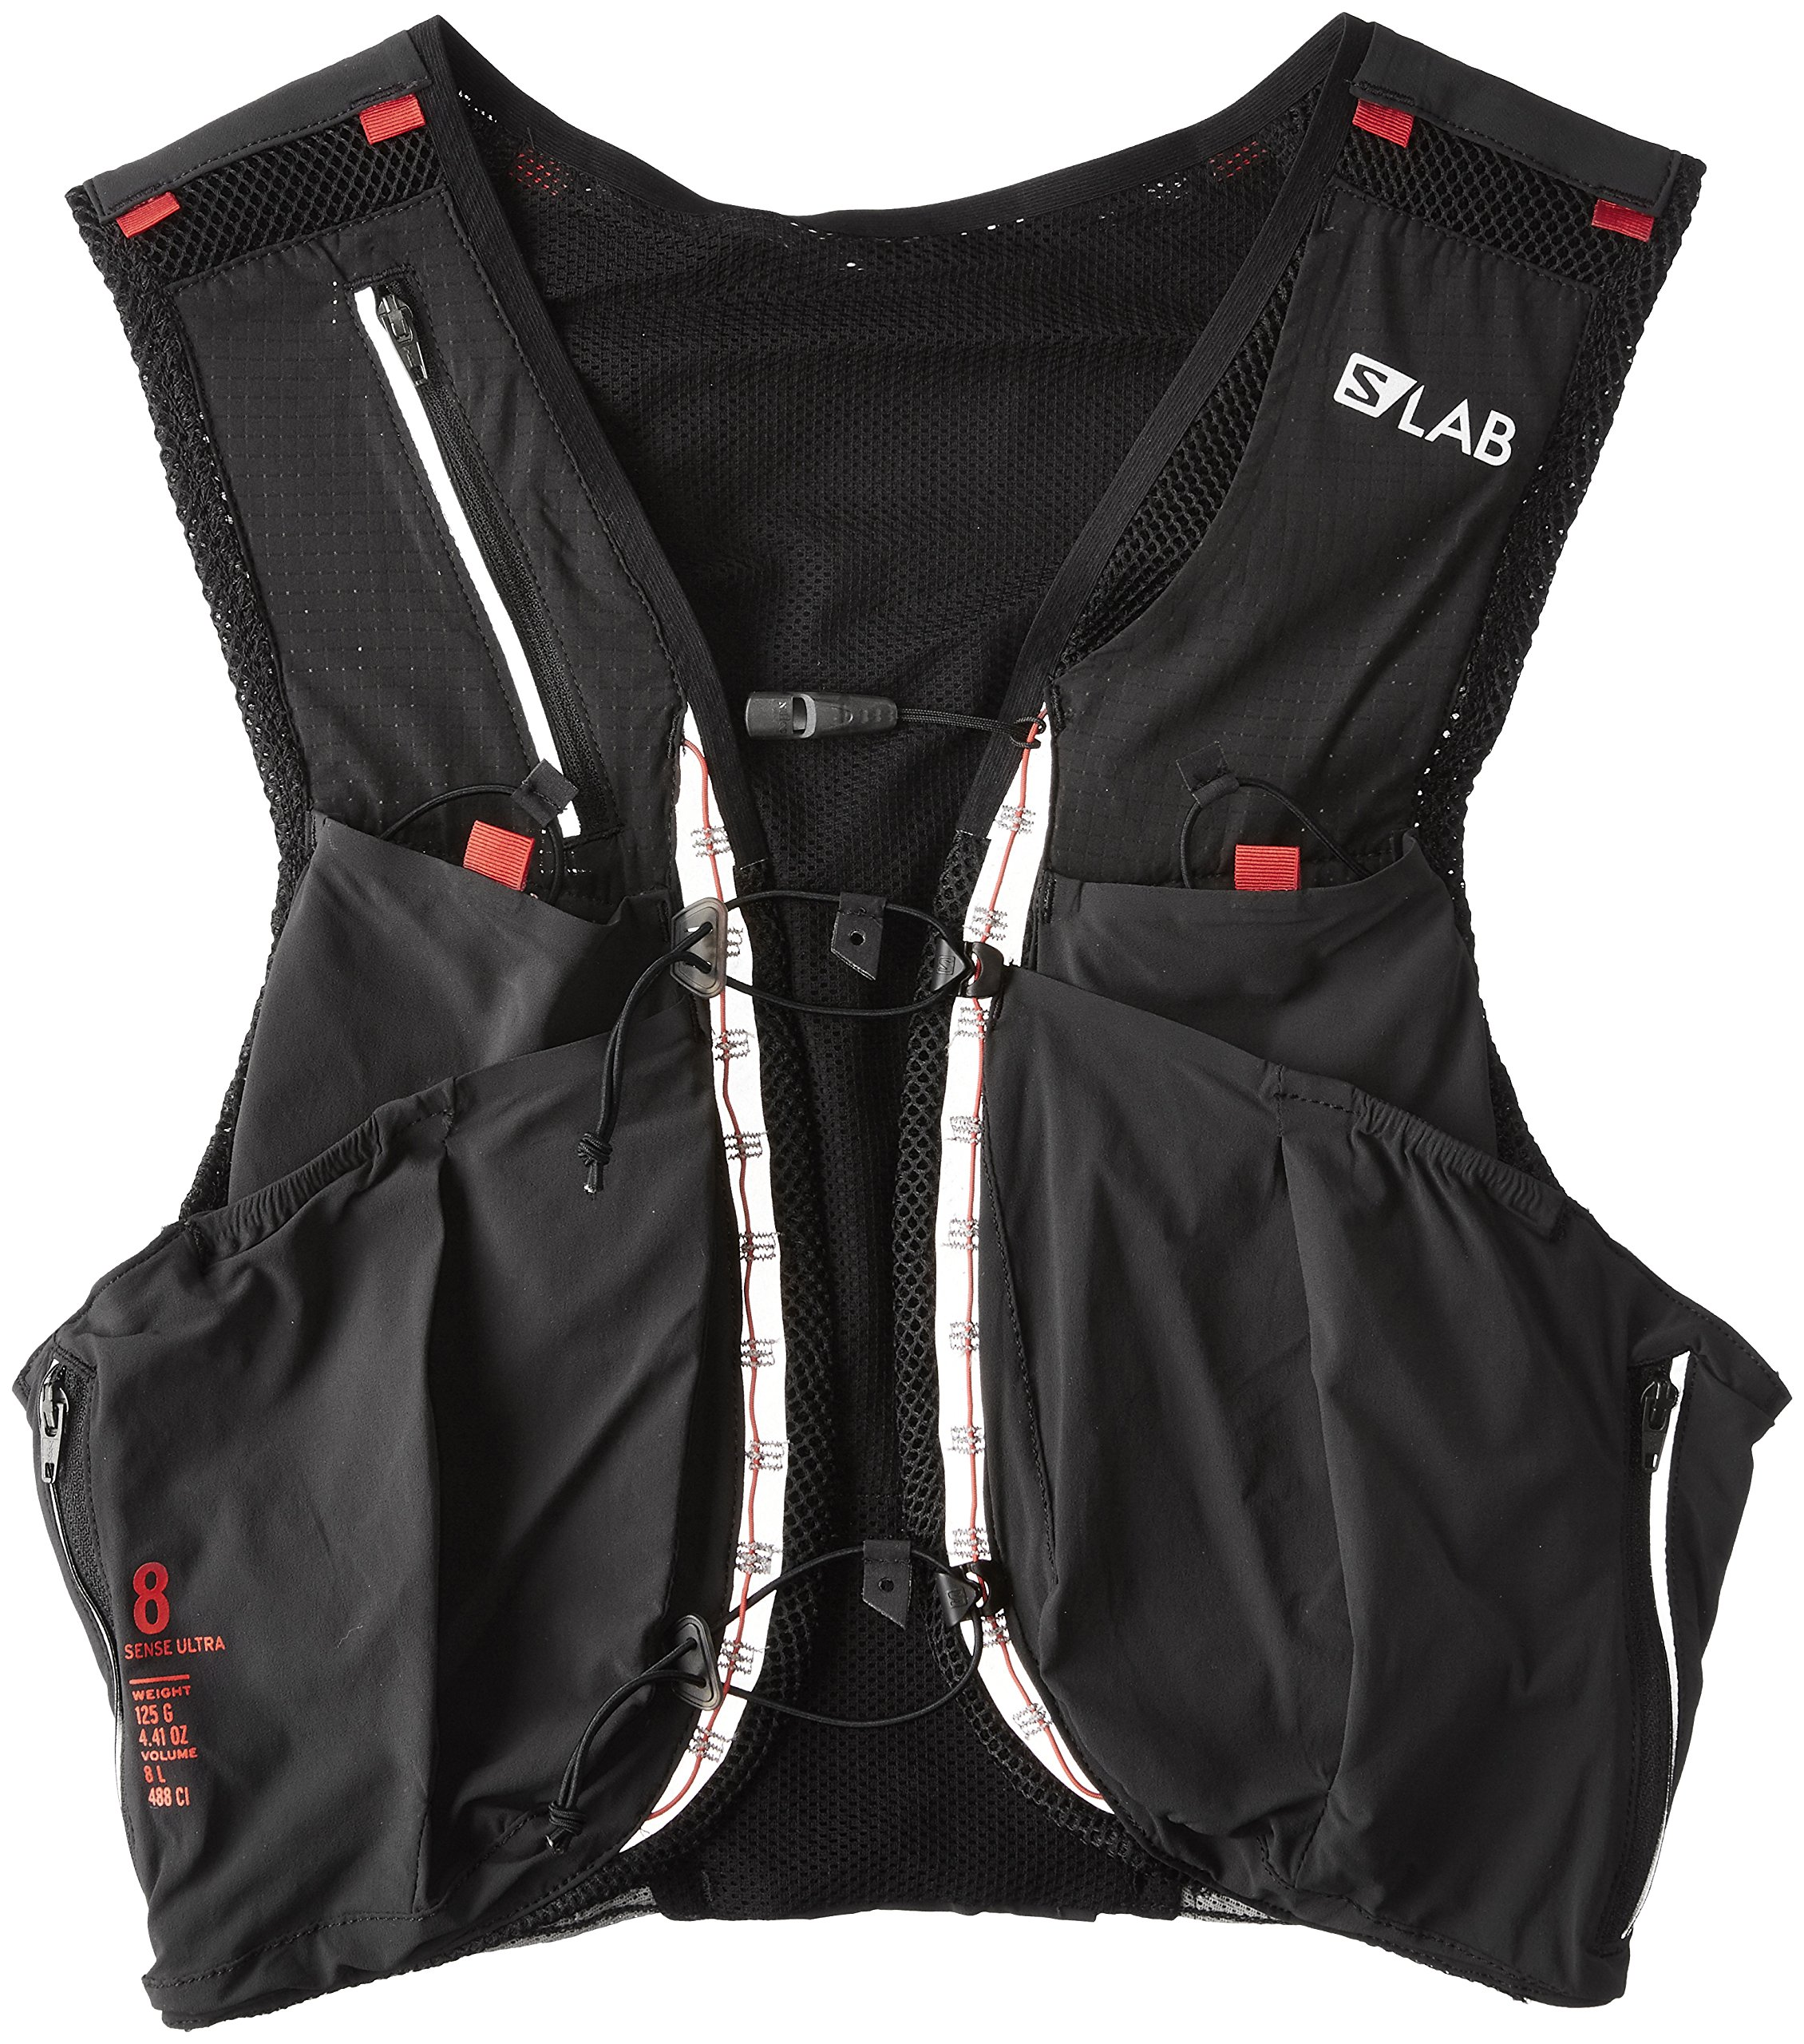 Salomon S-Lab Sense Ultra 8 Hydration Vest - Unisex